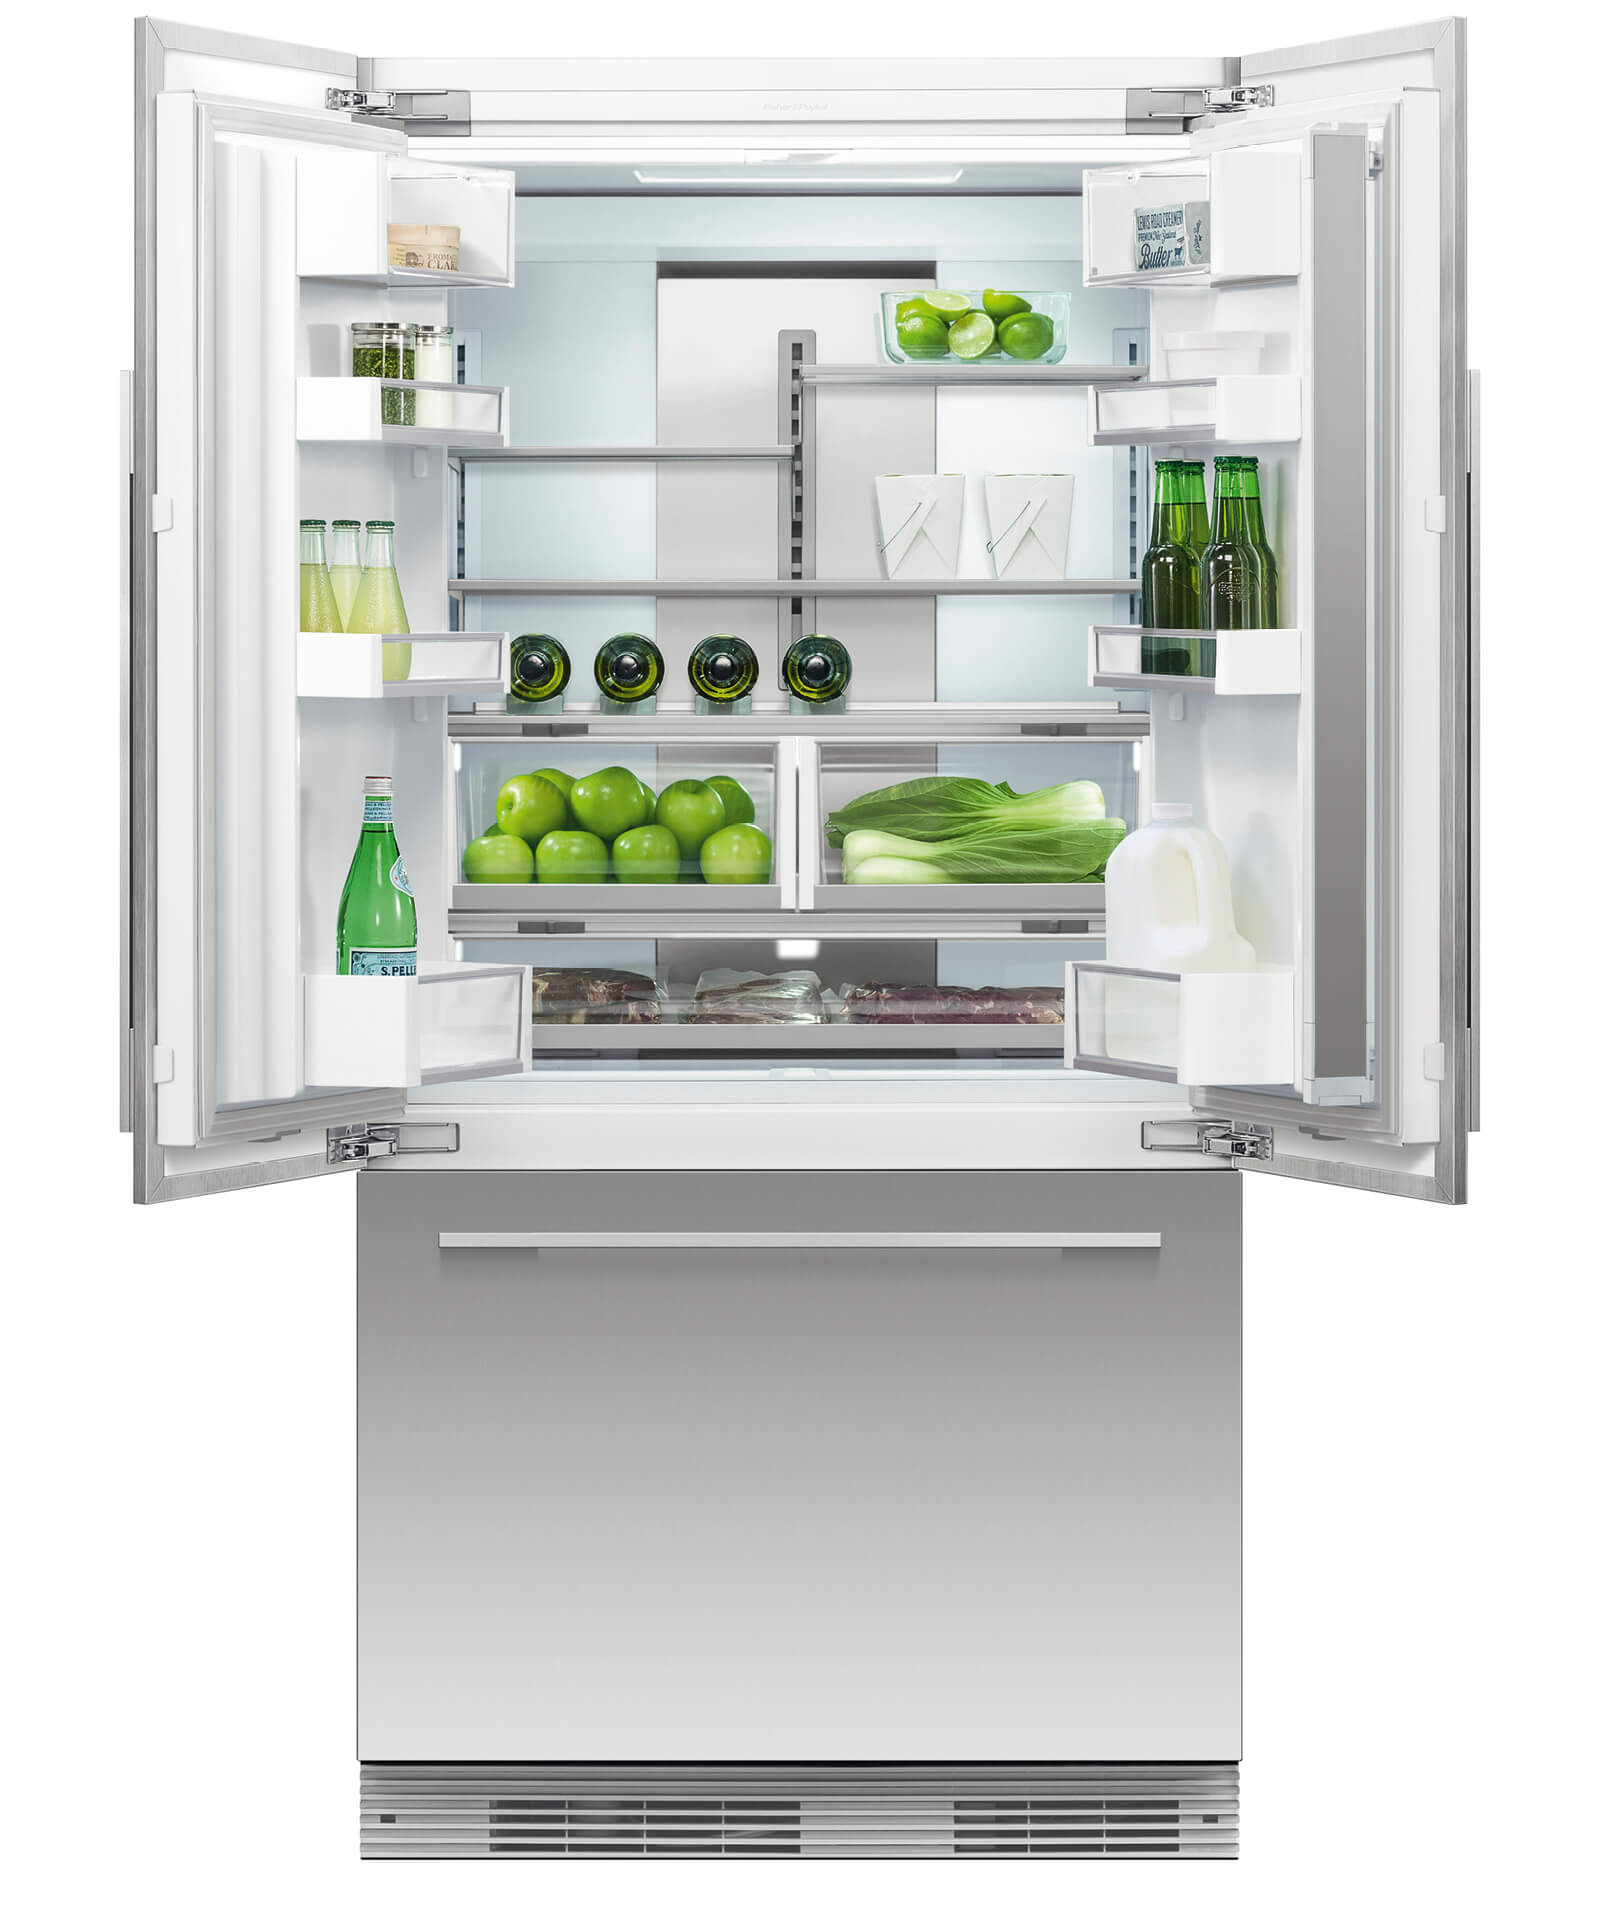 Rs36a72u1 integrated french door refrigerator fisher paykel prevnext asfbconference2016 Images